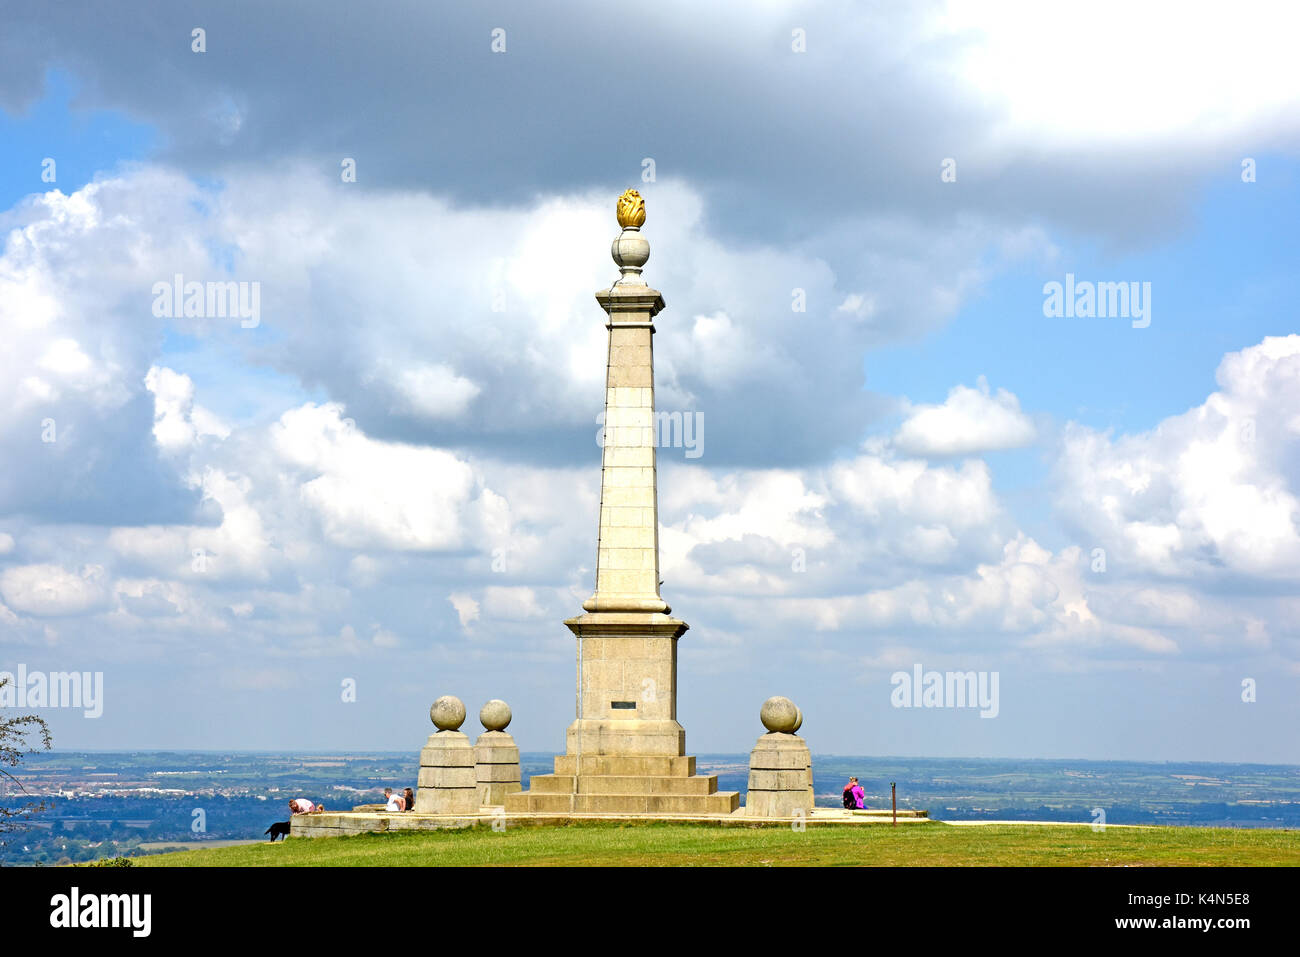 Chiltern Hills -summit Coombe Hill - South African war memorial - viewpoint over Aylesbury Plain - sunlight - cloud flecked sky - Stock Image